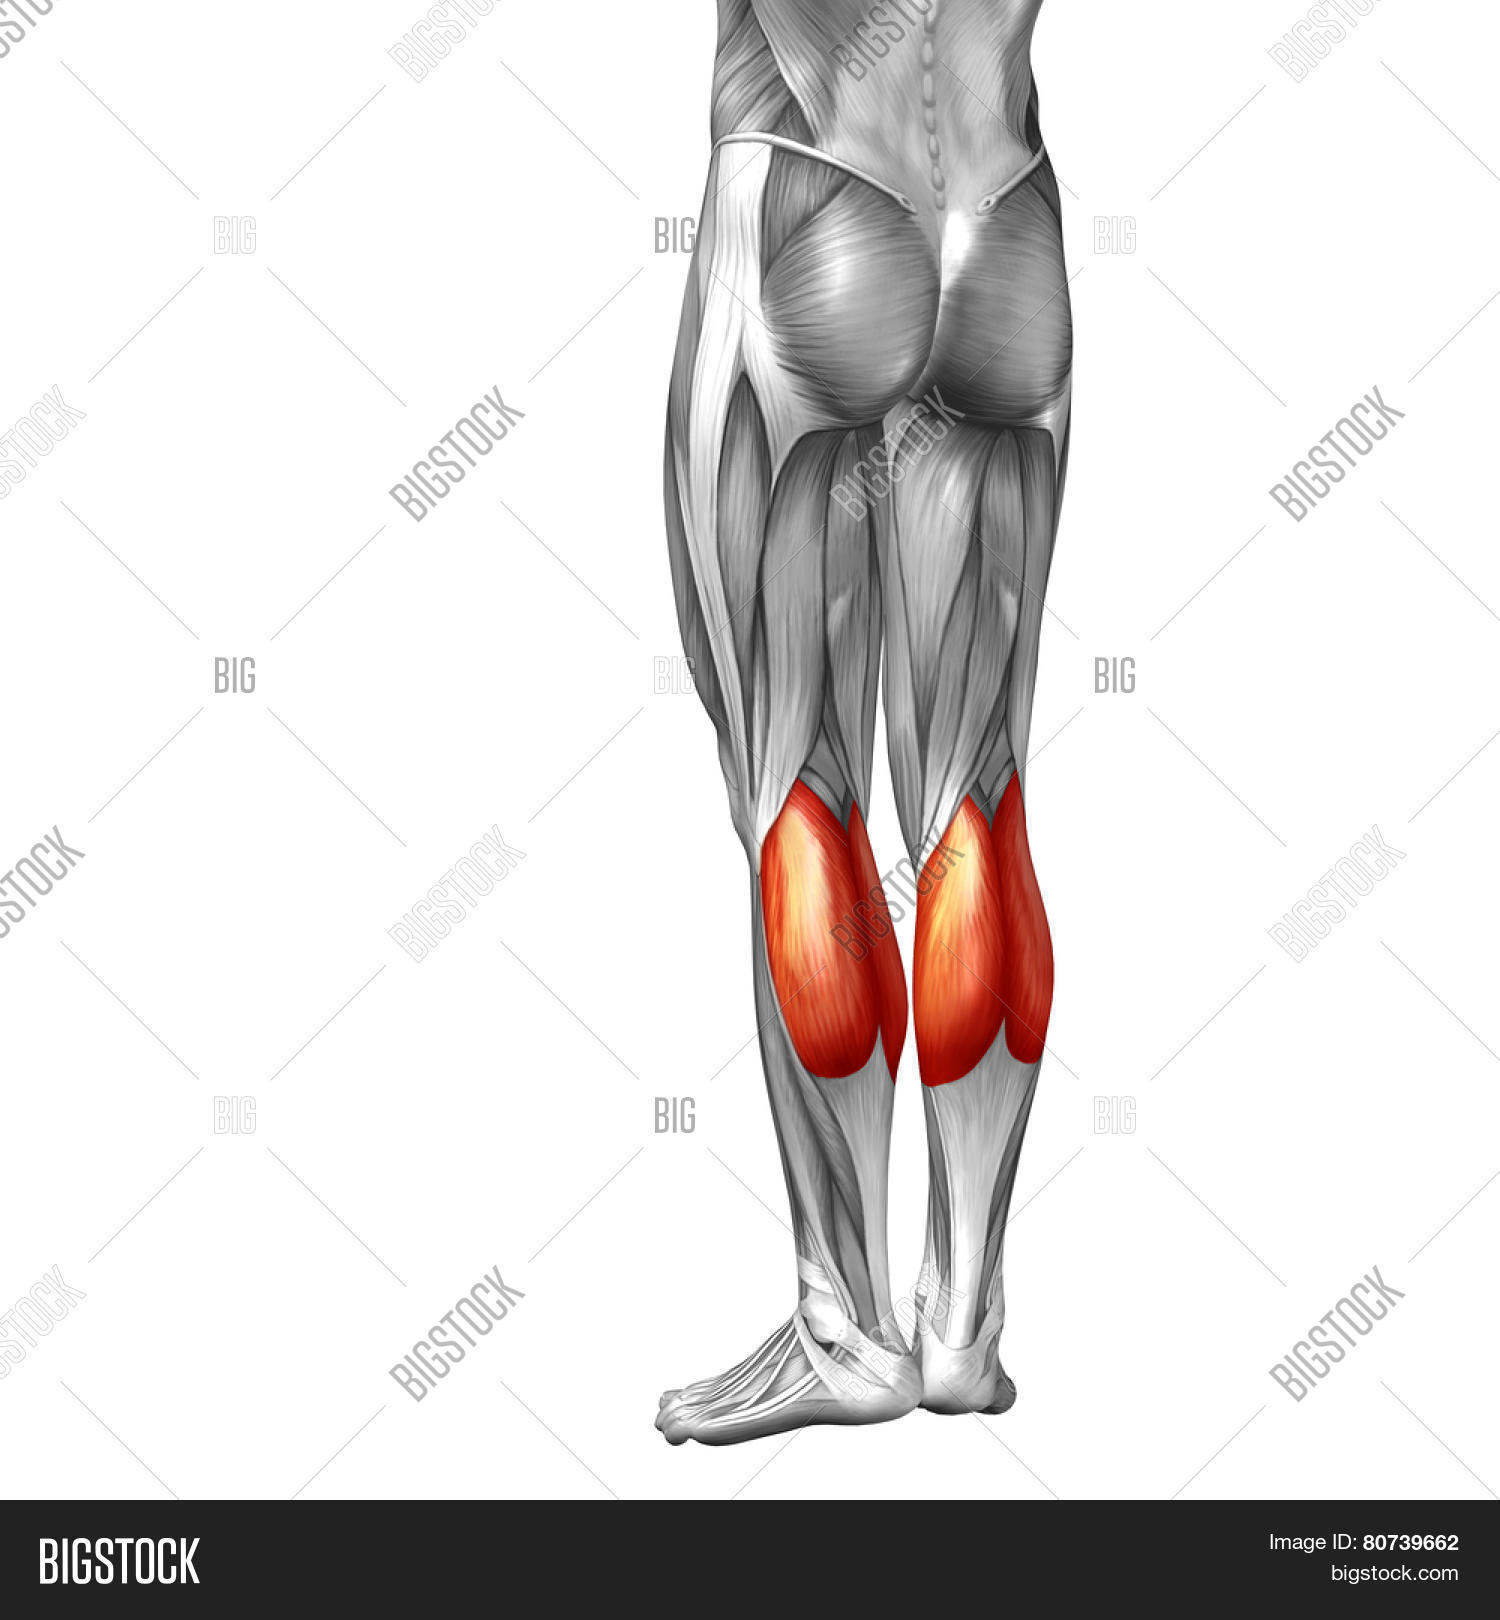 Concept Or Conceptual 3d Gastrocnemius Human Lower Leg Anatomy Or